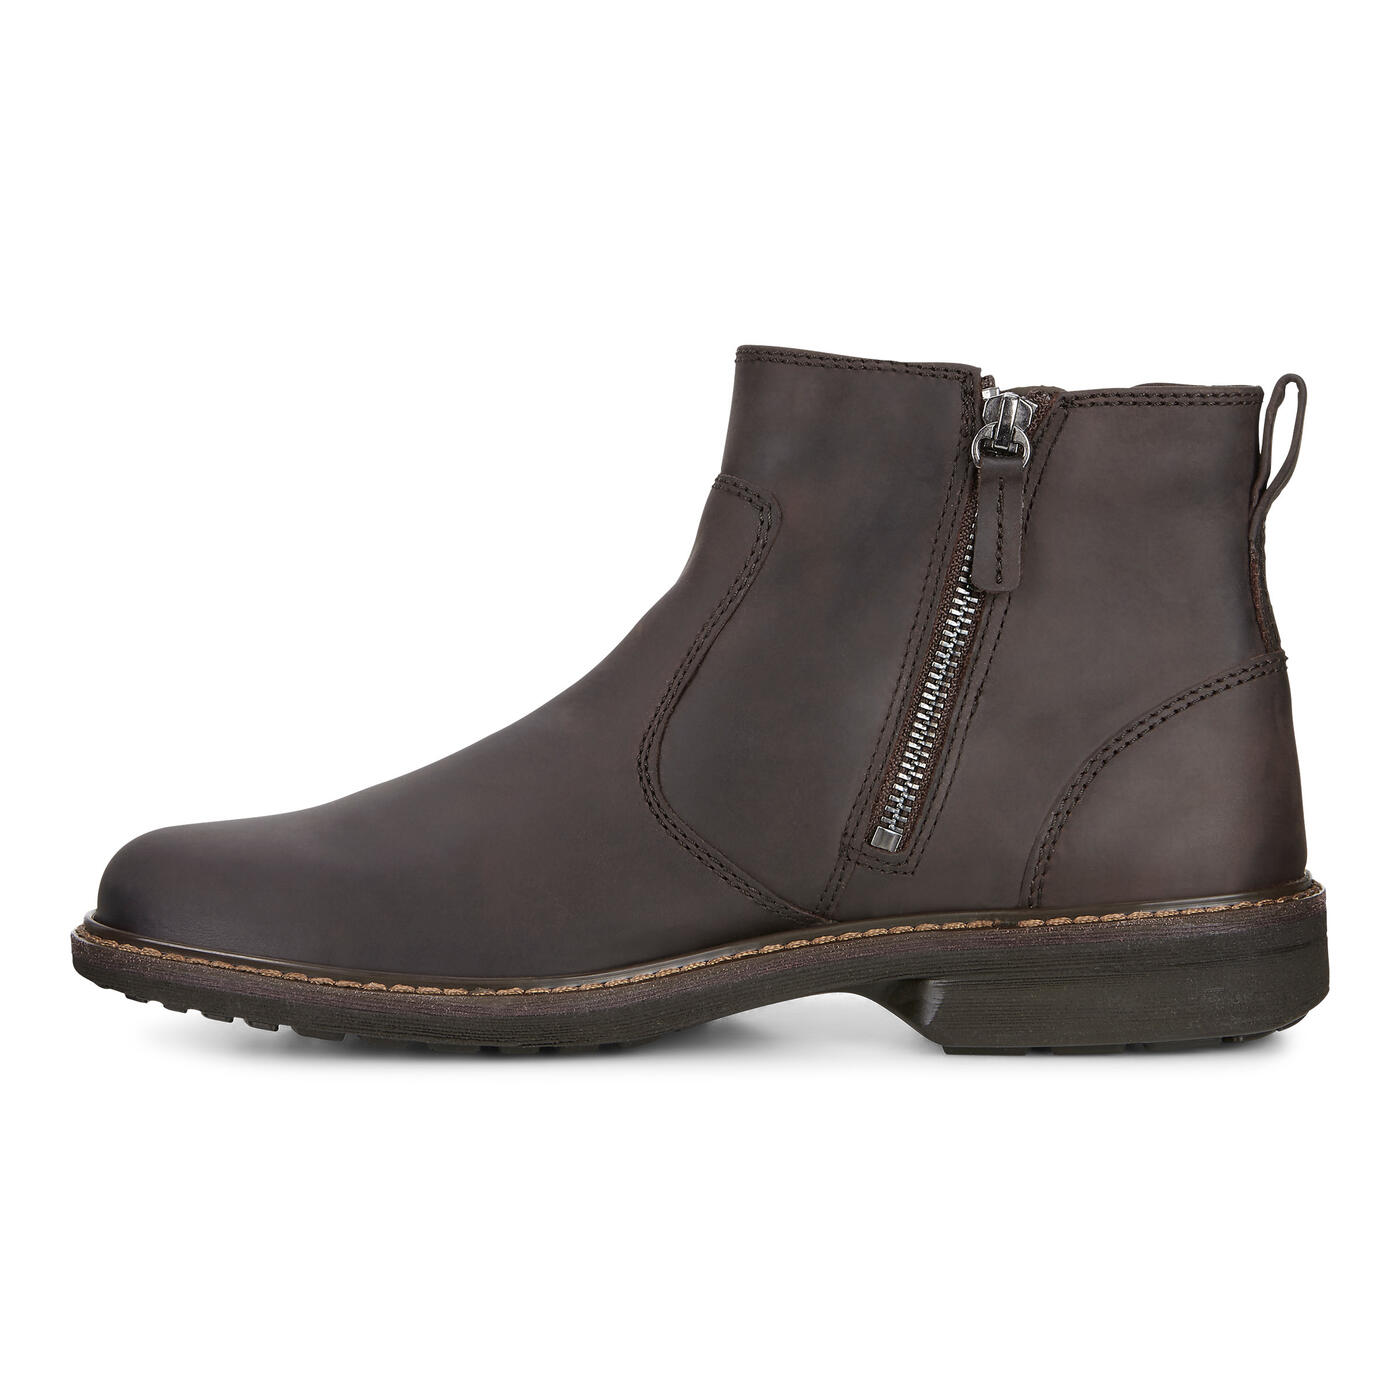 ECCO Turn GTX Chukka Boot